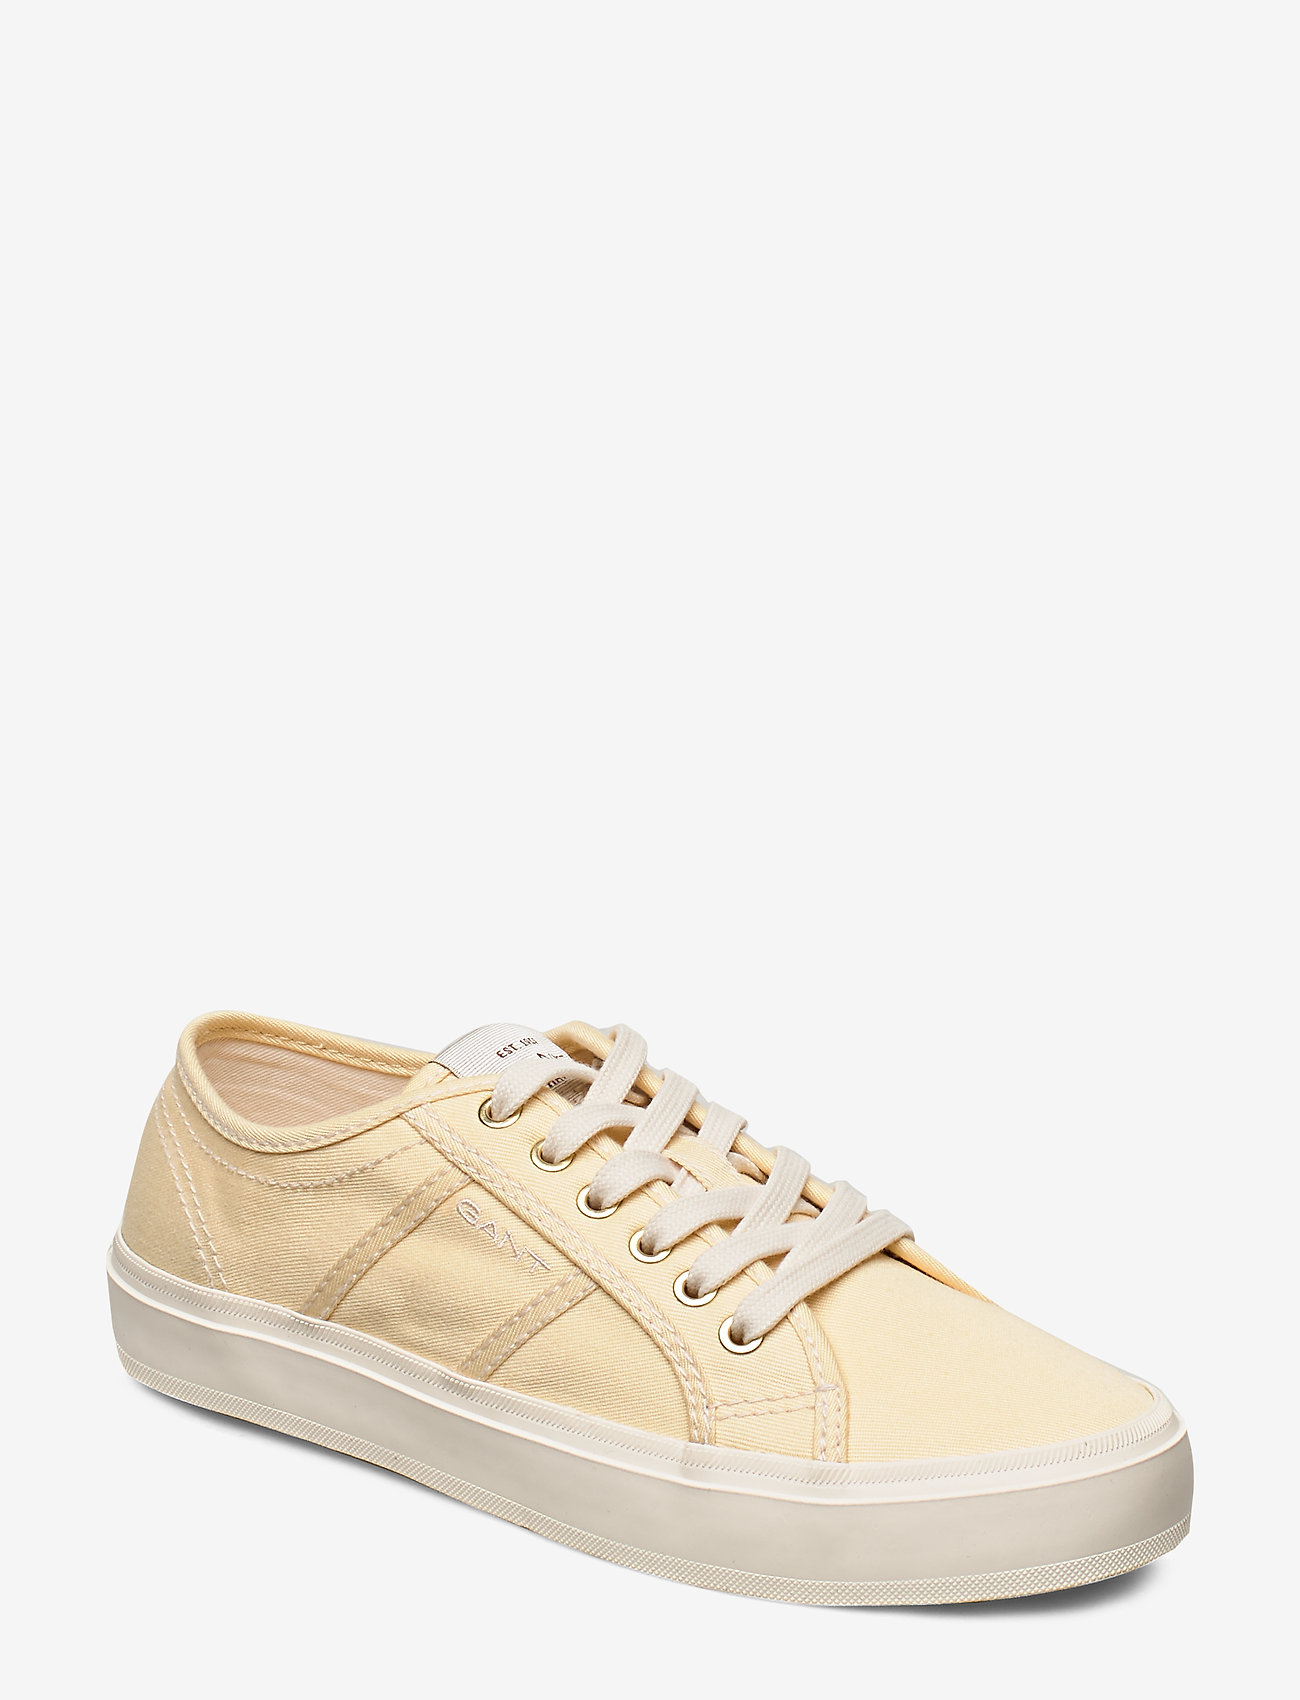 GANT - Pinestreet Low laceshoes - low top sneakers - light yellow